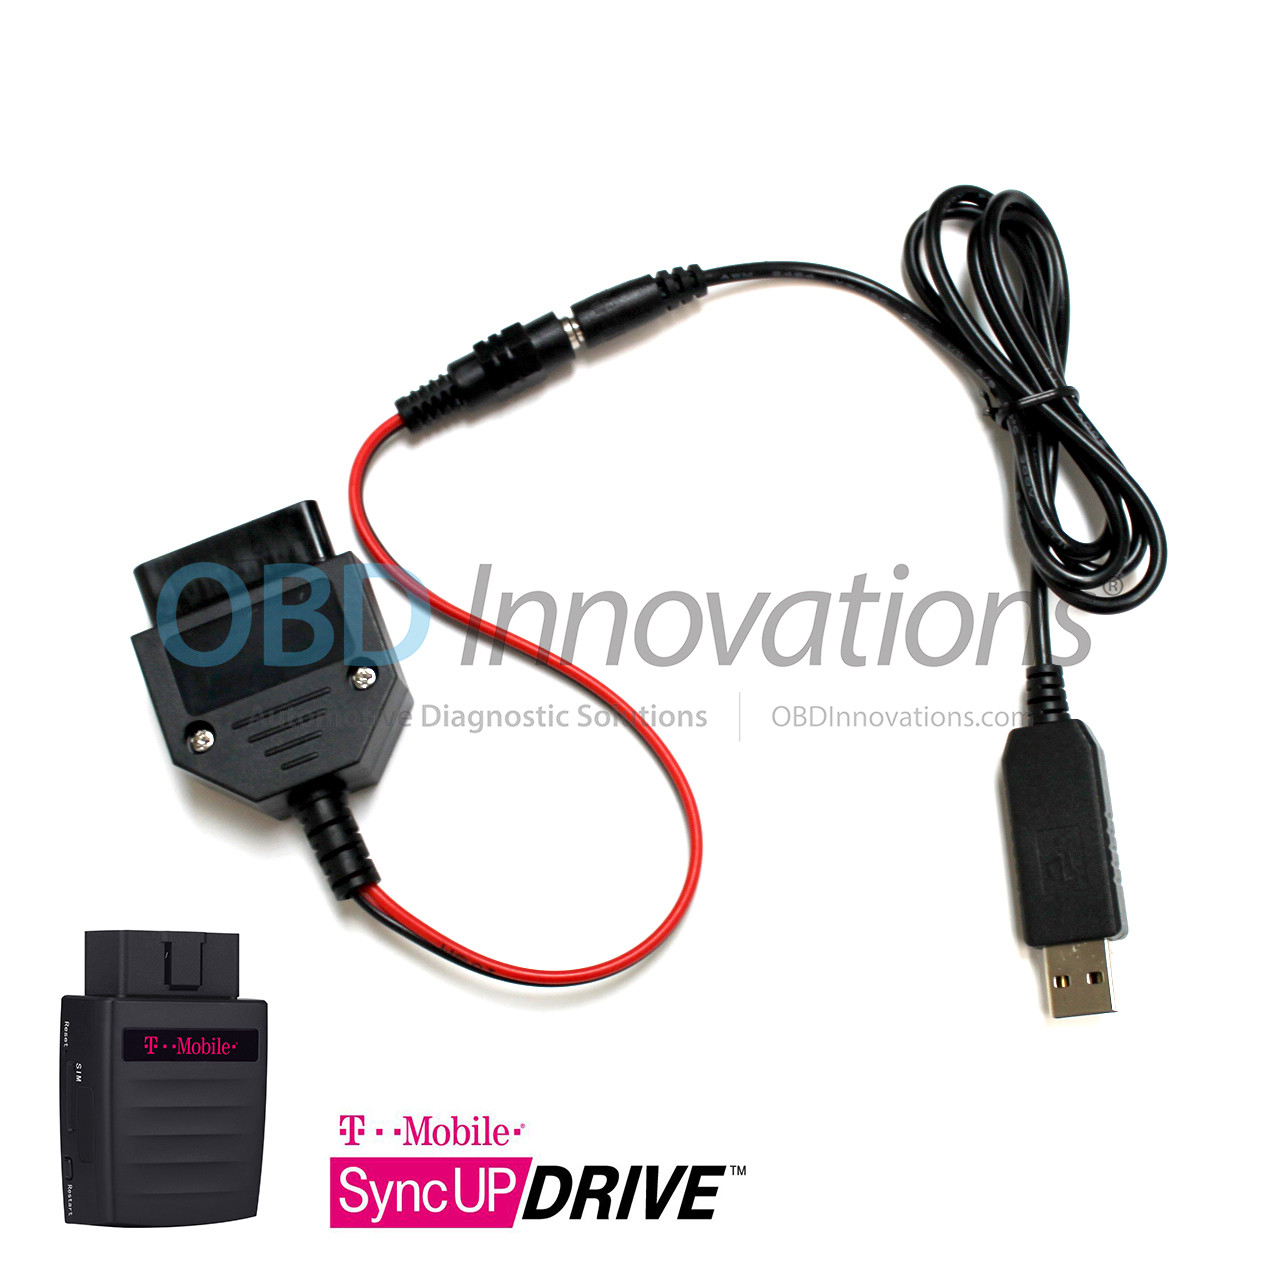 USB OBD2 Power Adapter for T-Mobile SyncUP DRIVE WiFi Hotspot